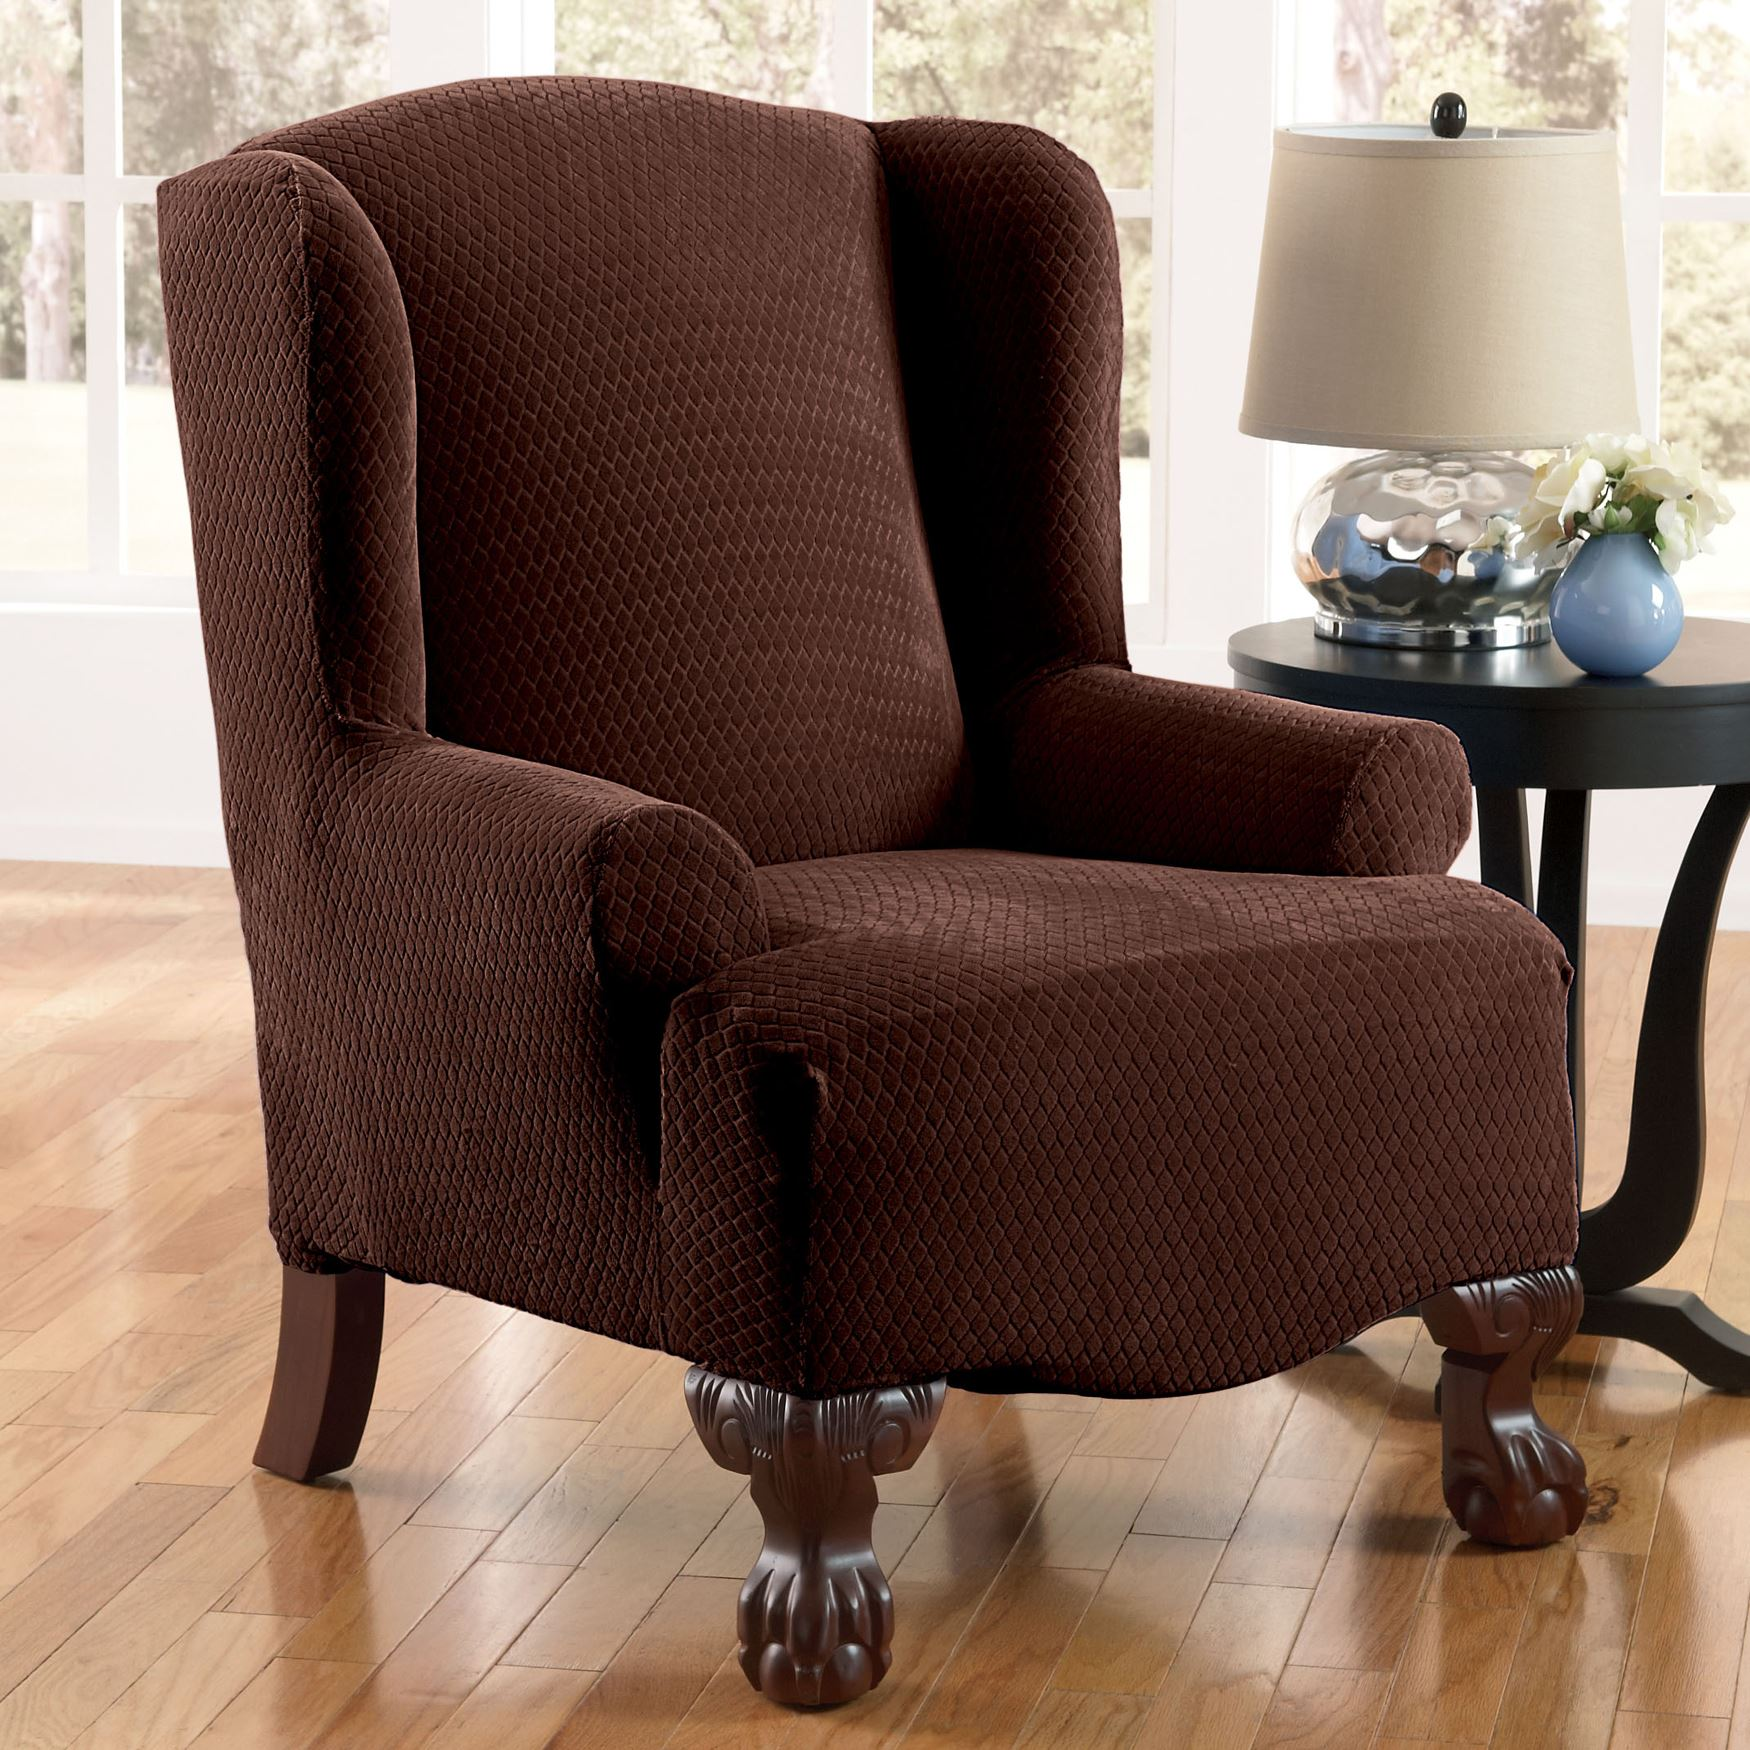 Image of: Popular Wing Chair Recliner